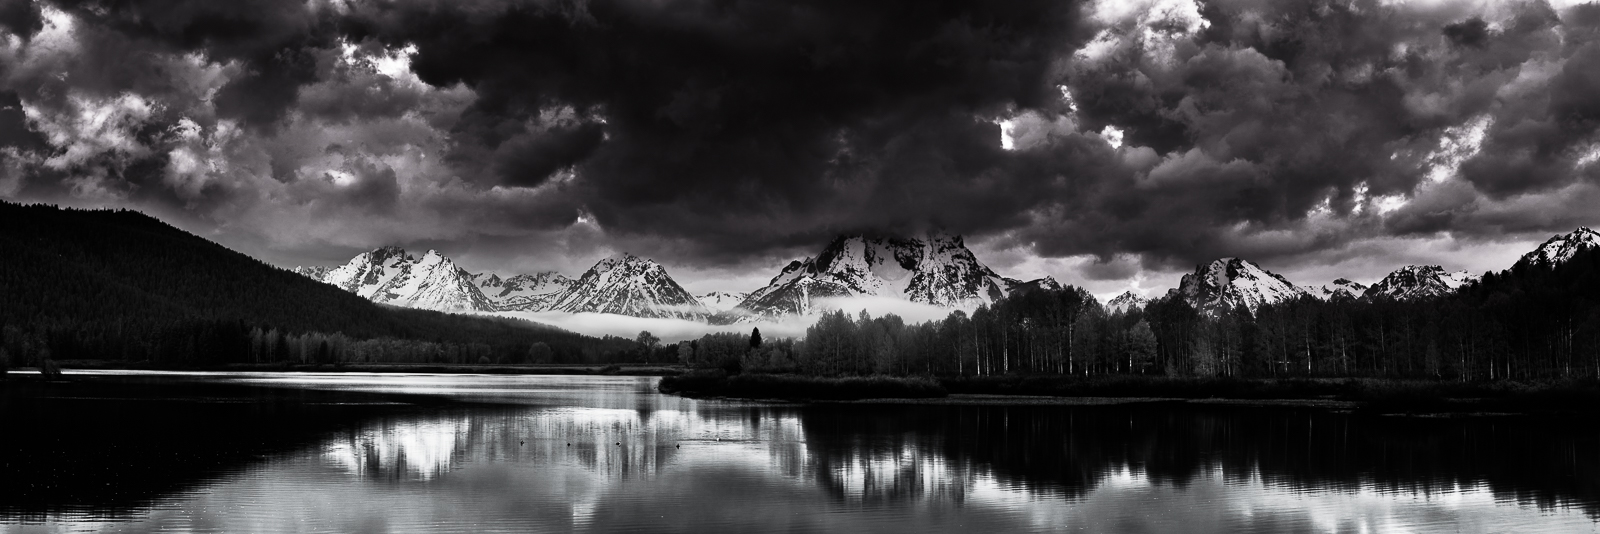 Shades of Oxbow,Black and White,Grand Teton National Park,Horizontal,Mountains,Wyoming,landscape, photo